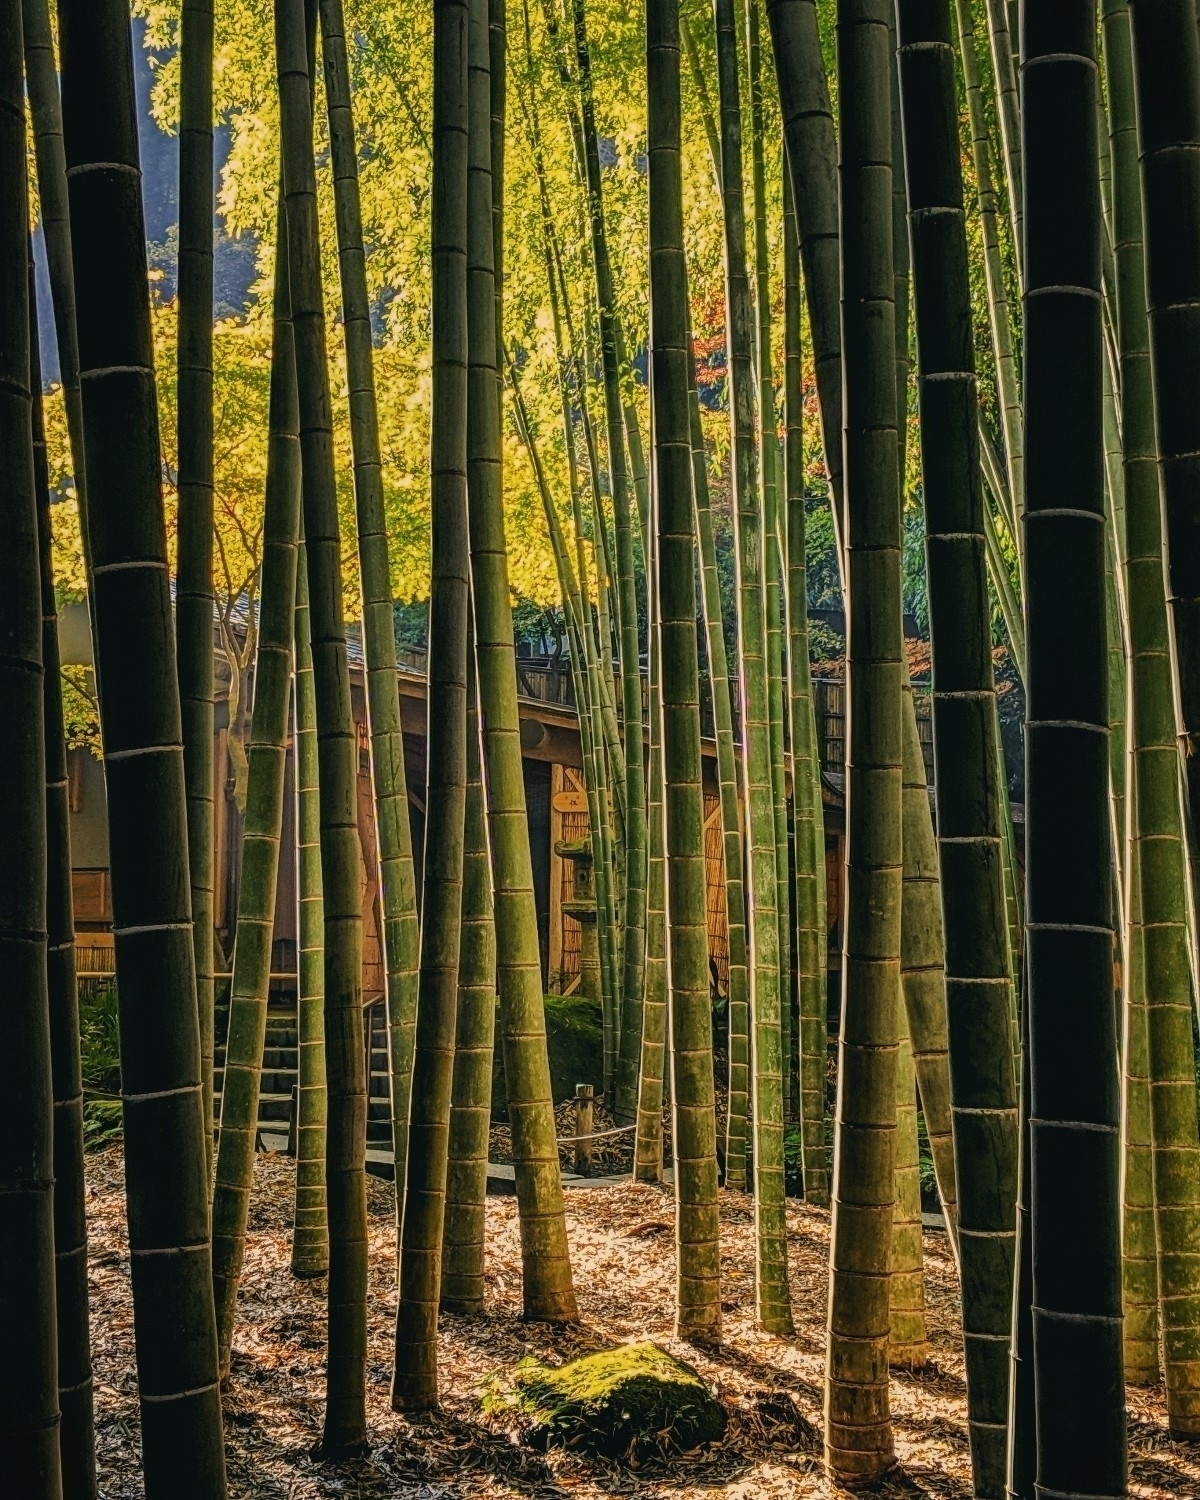 teahouse trees, bamboo accurate - fokality | ello